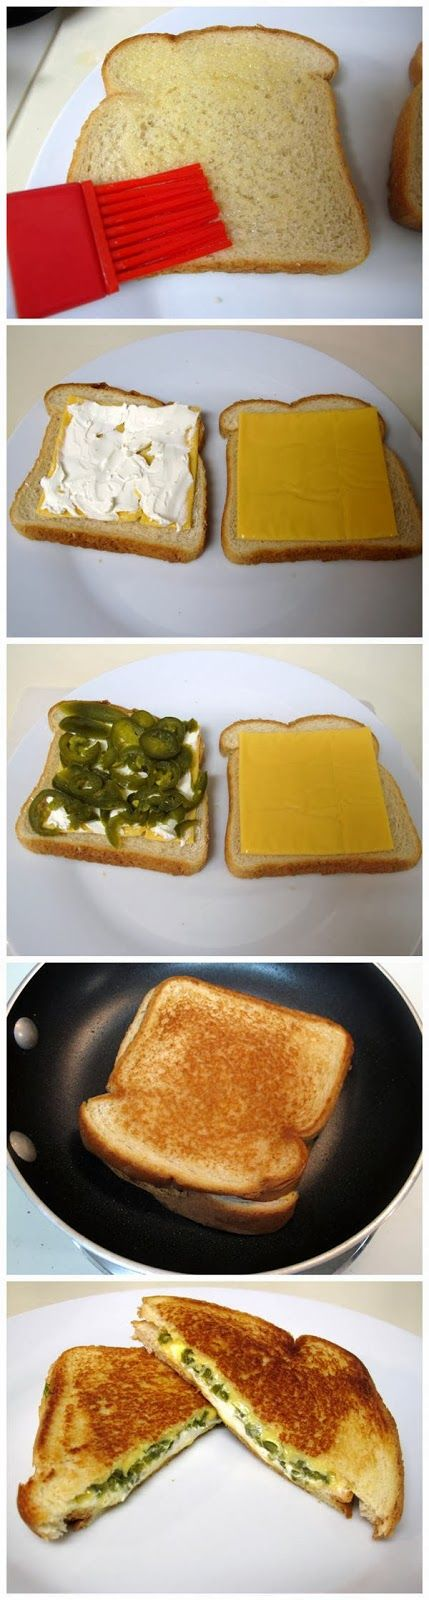 Jalapeno Popper Grilled Cheese Sandwiches. Why have I never thought of this! (466)